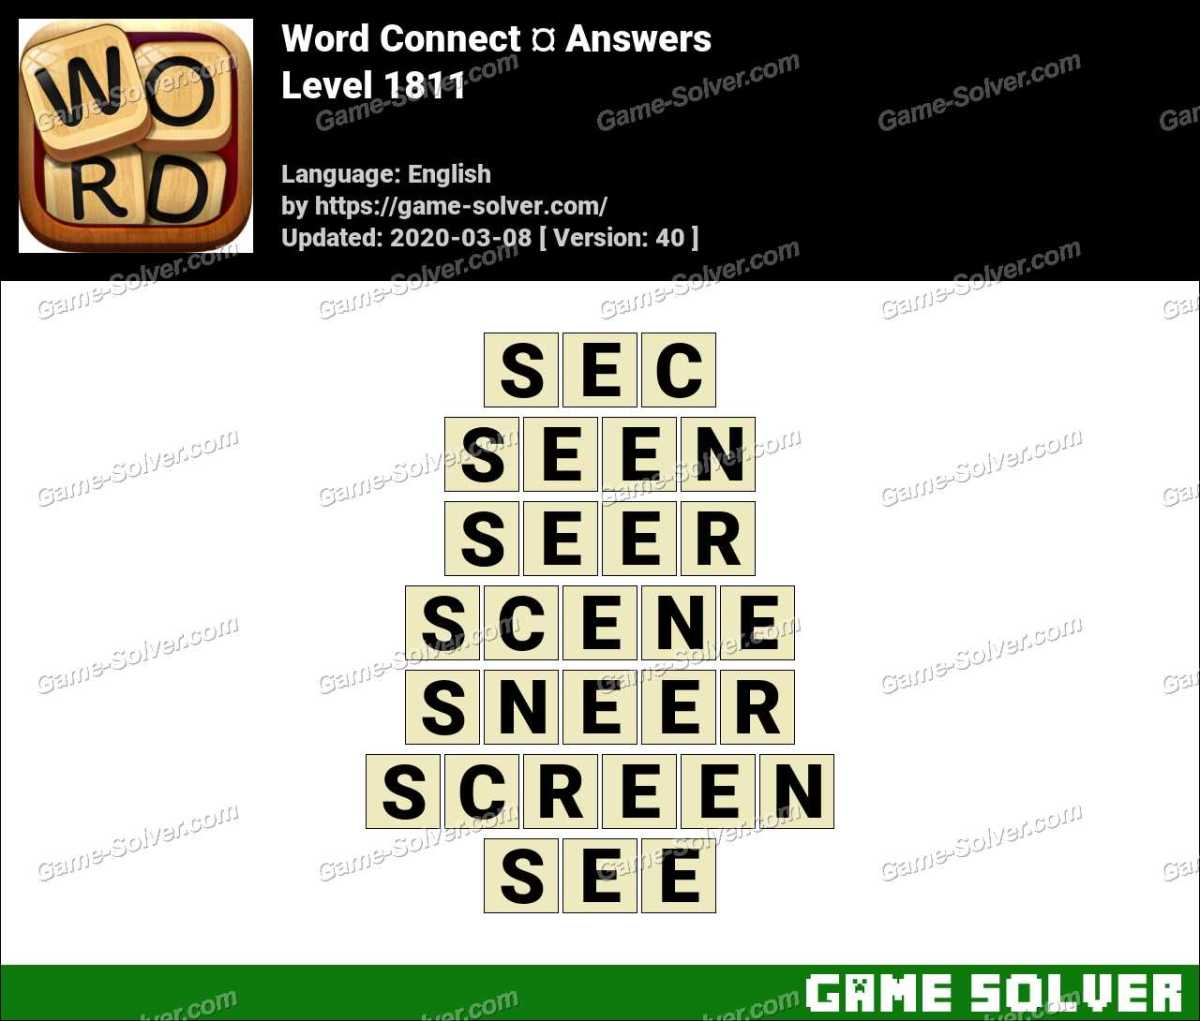 Word Connect Level 1811 Answers